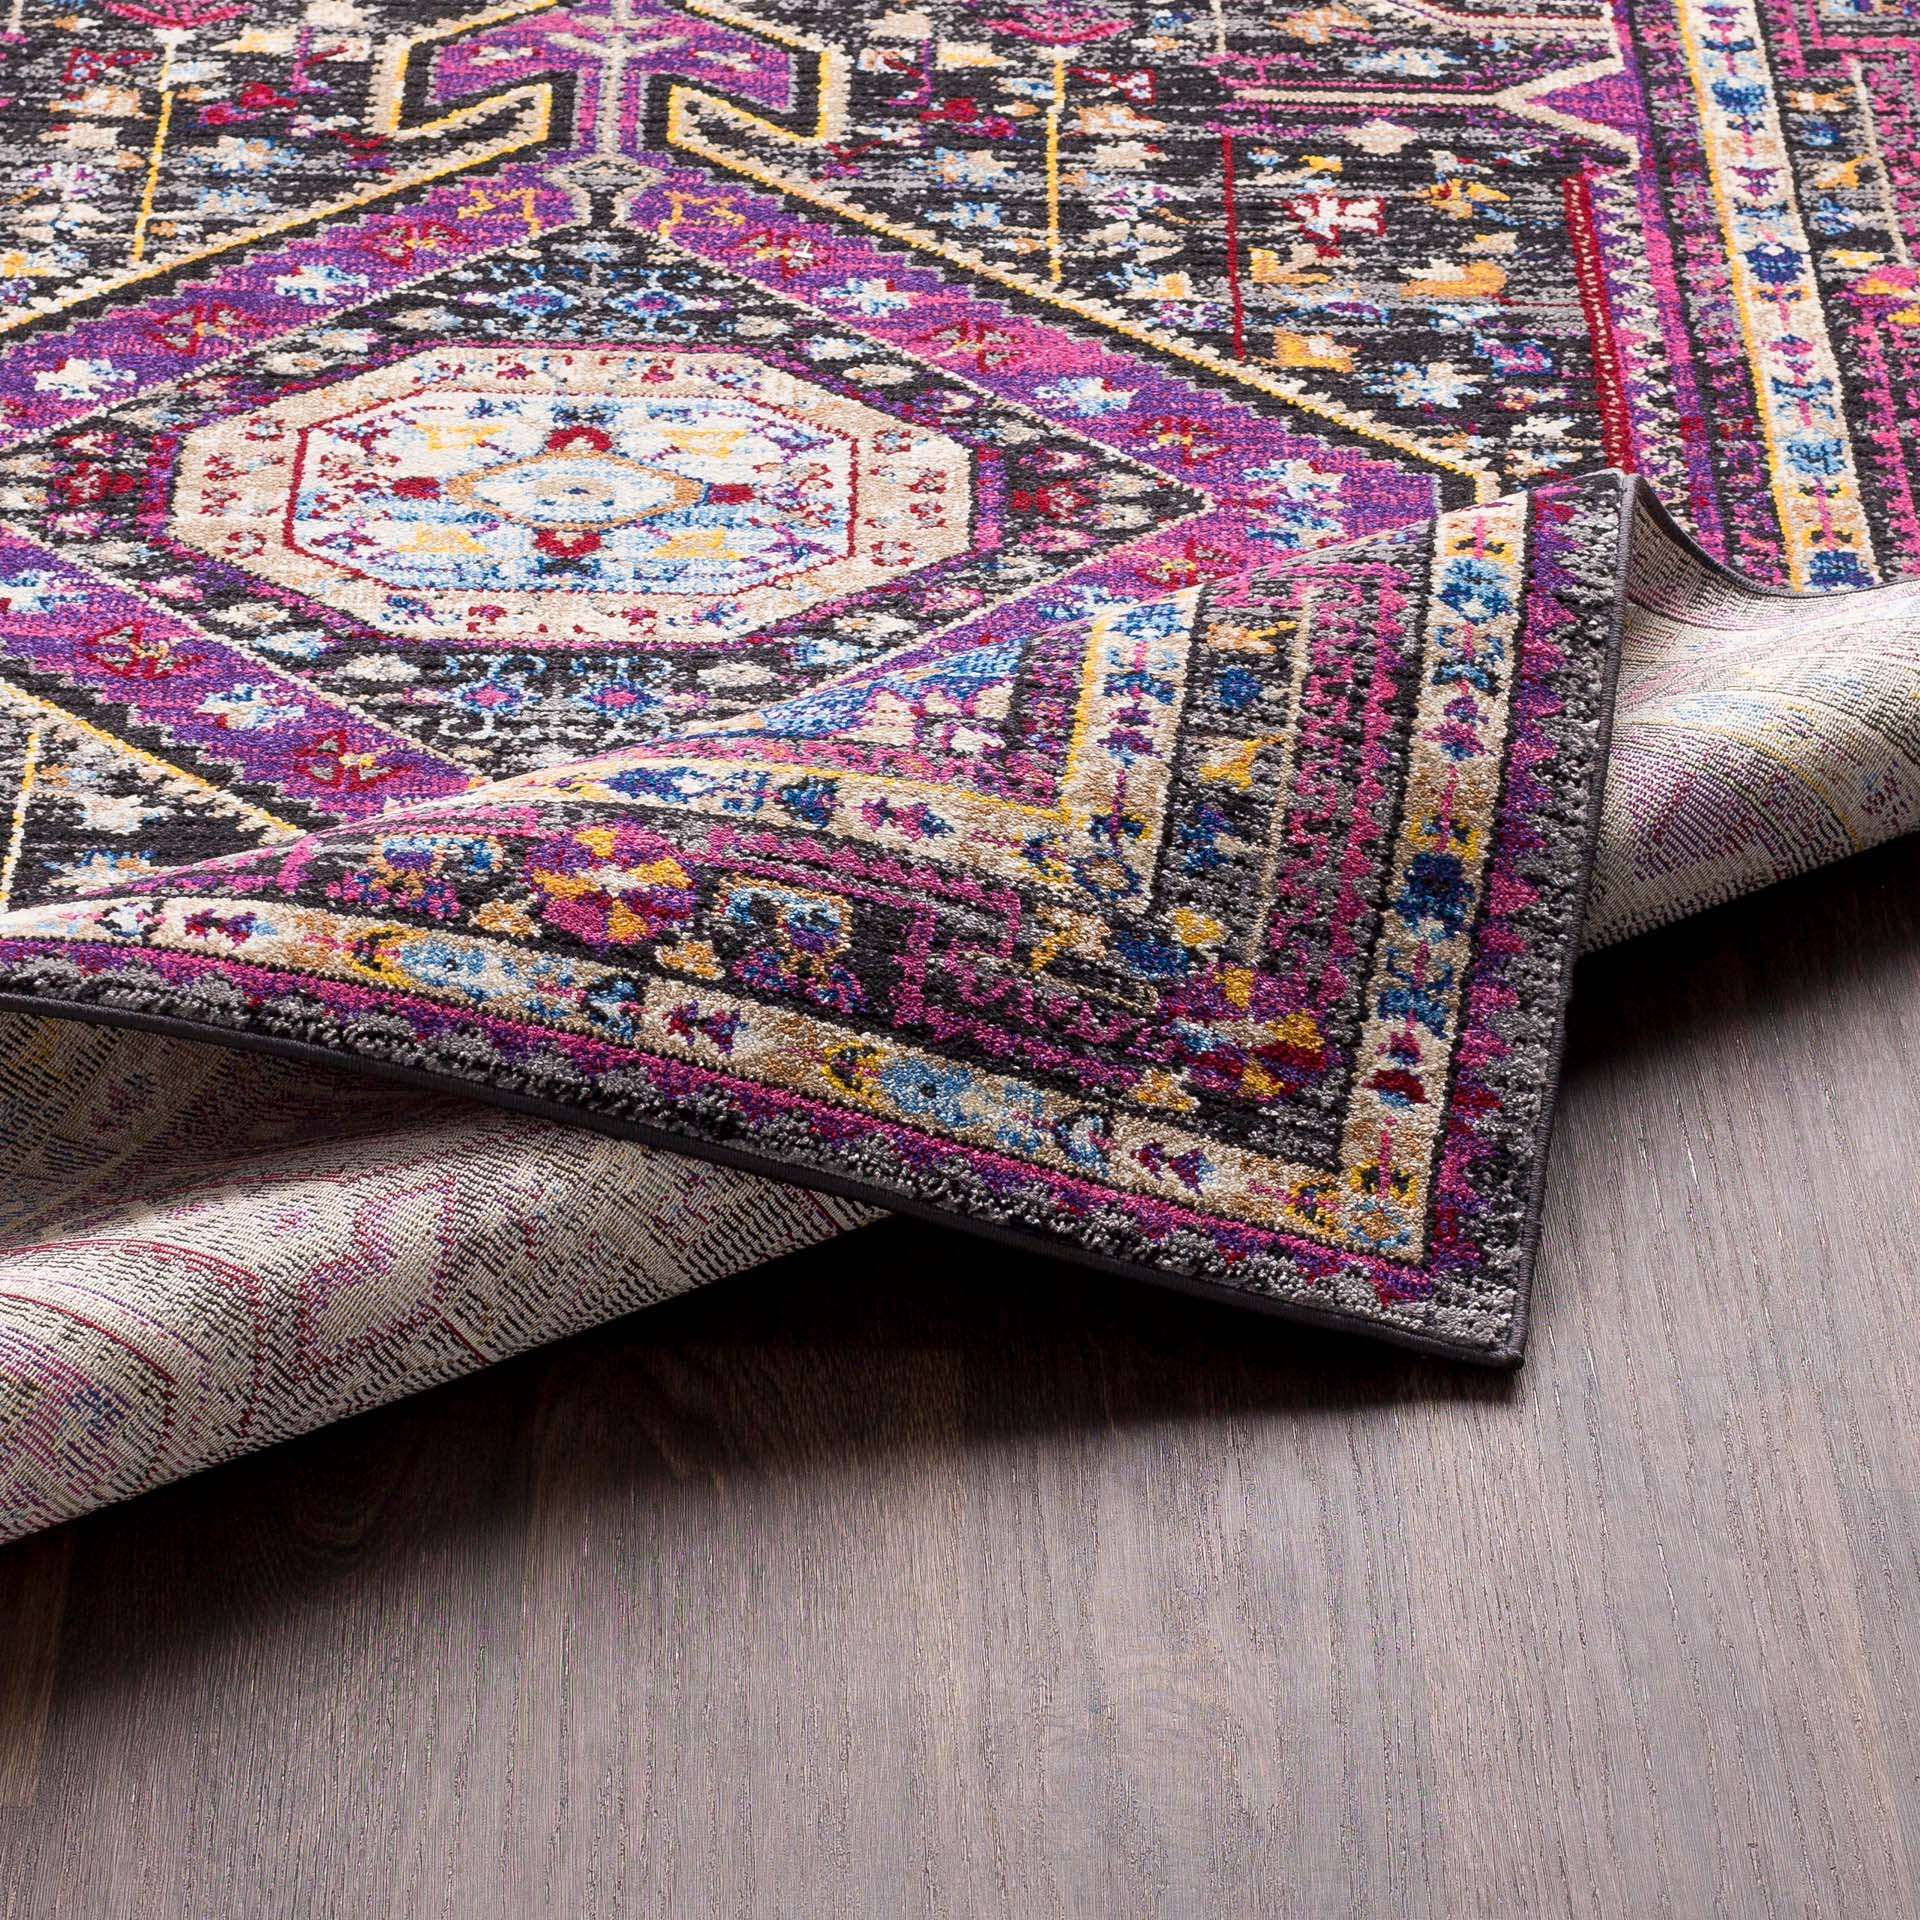 Unique and colorful Turkish 5' x 7' area rug with strong hints of pink from the Alchemy collection - Backing View